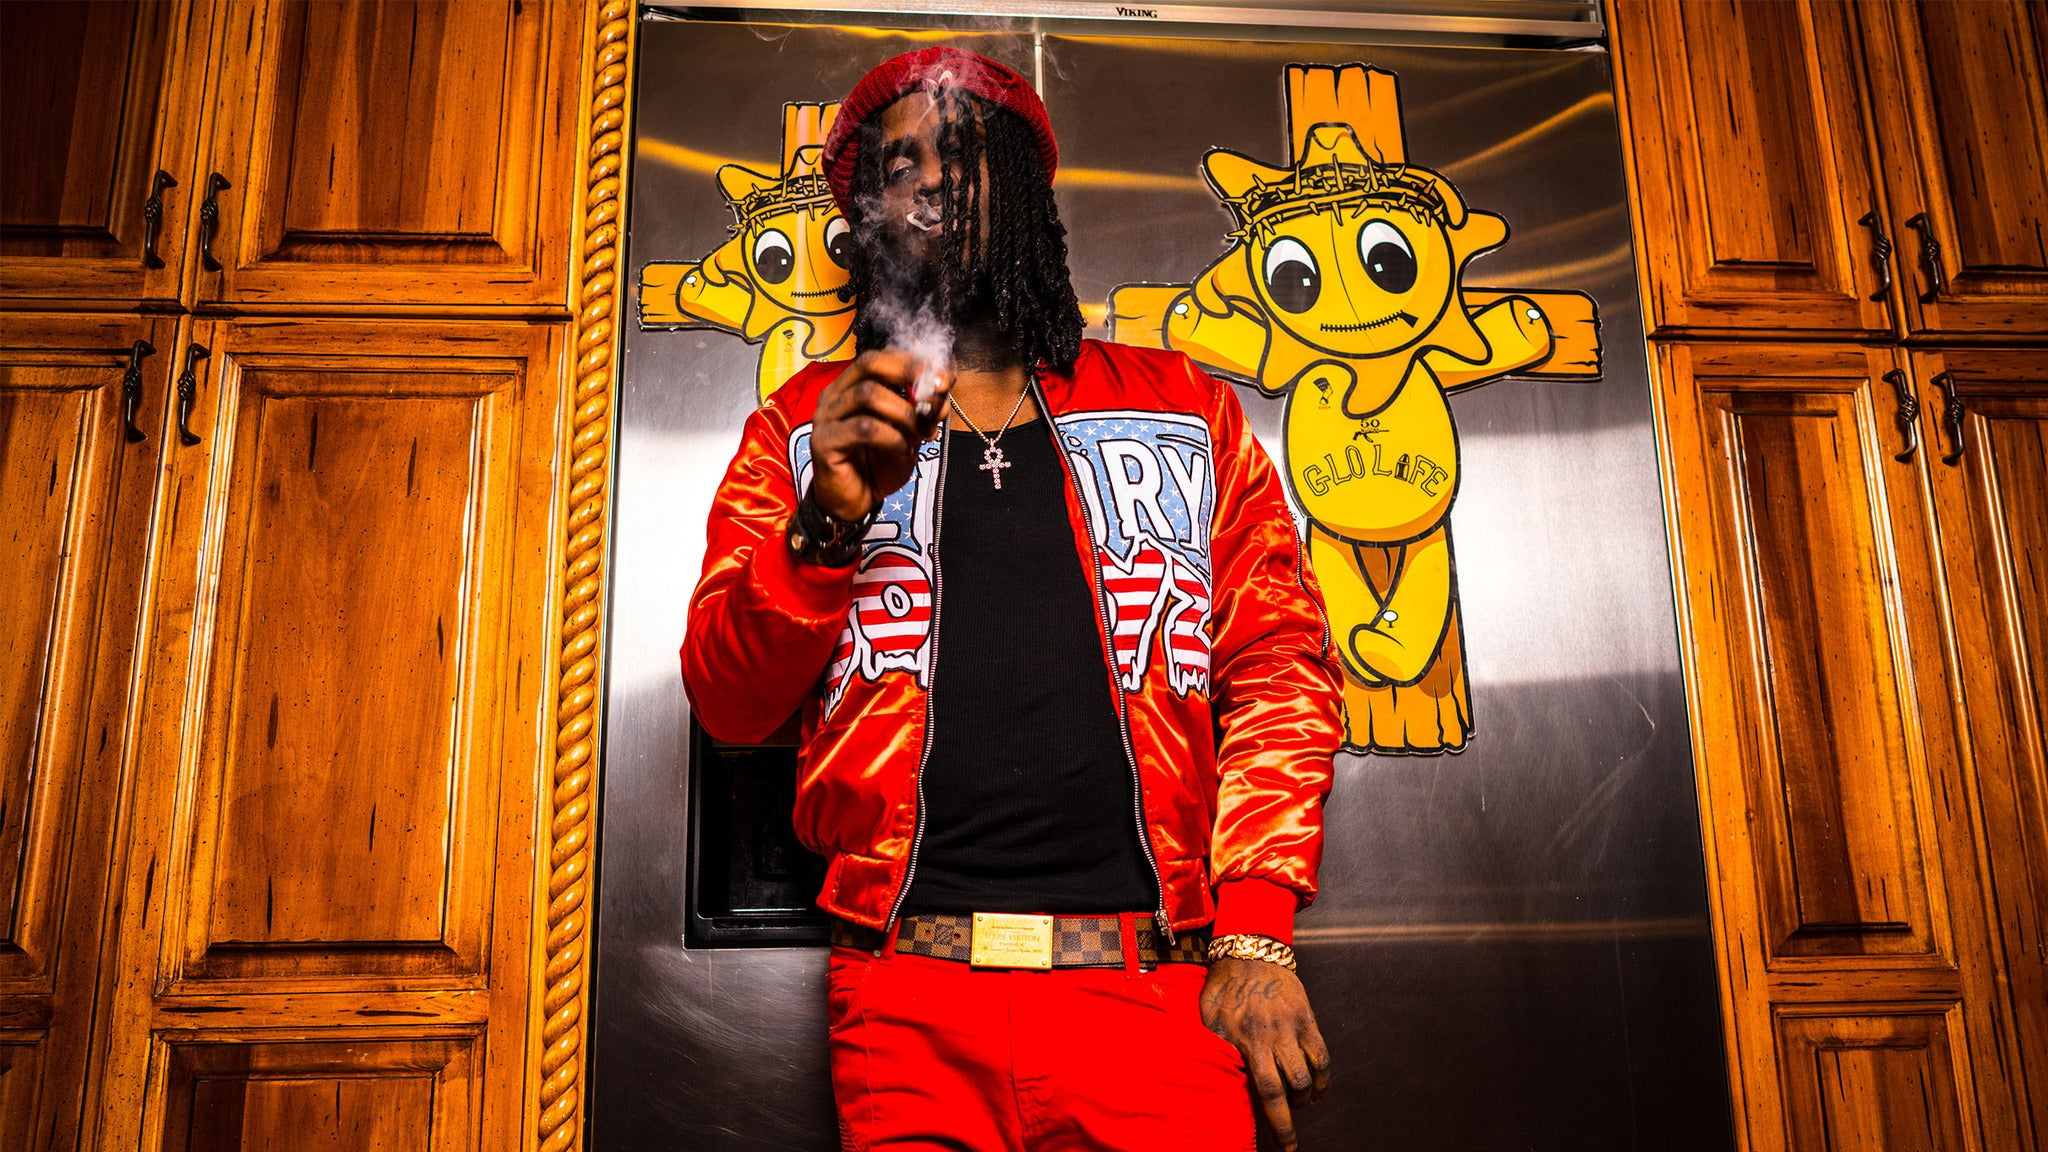 Chief Keef at Gothic Theatre